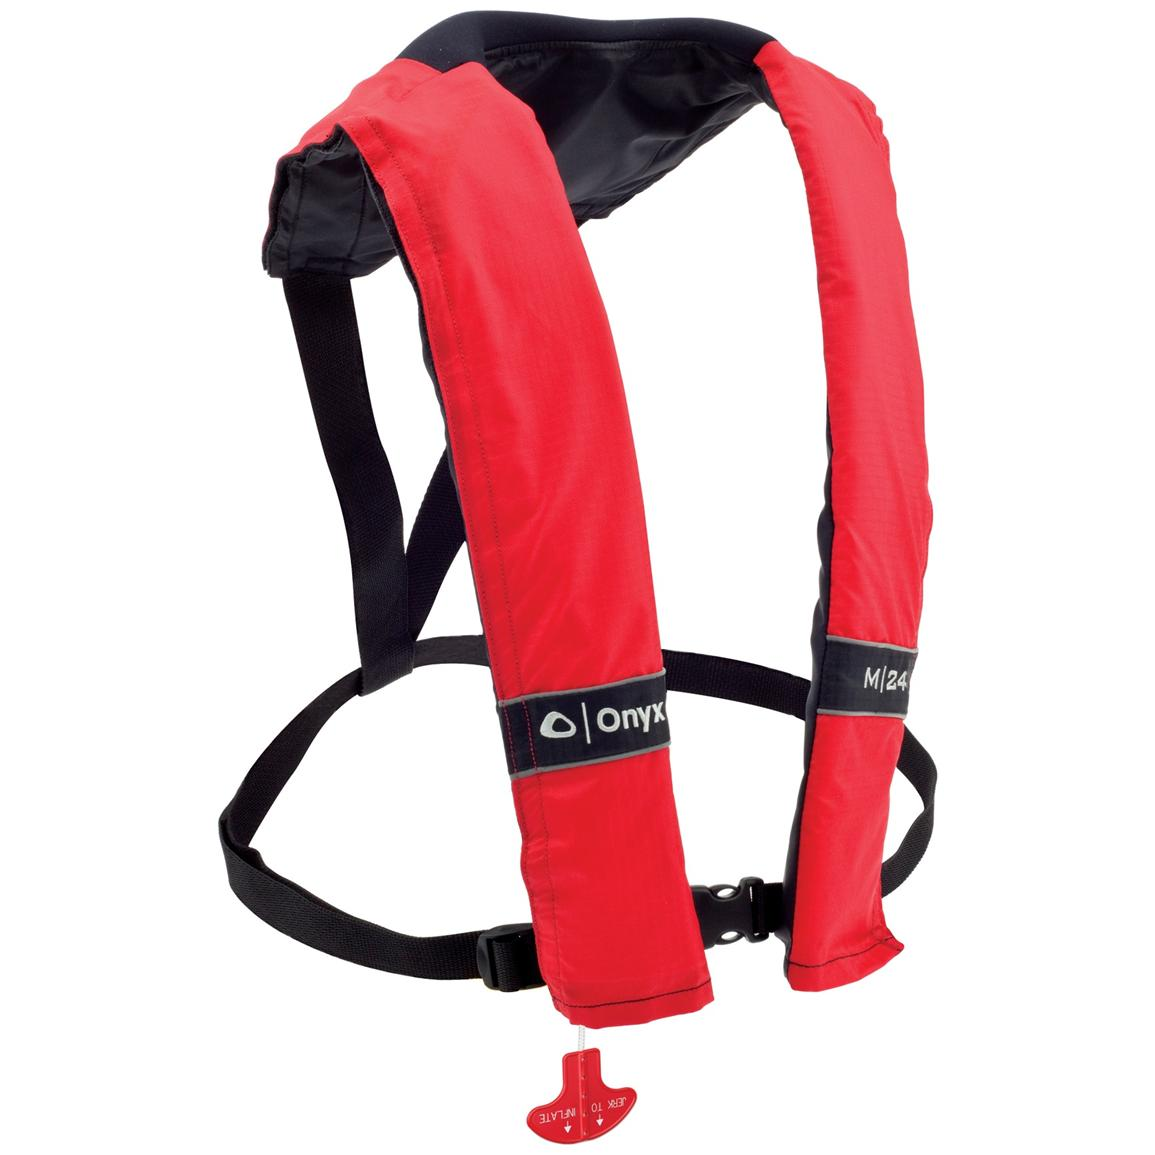 Onyx® 3100 M/24 Manual Stole Type V Inflatable PFD